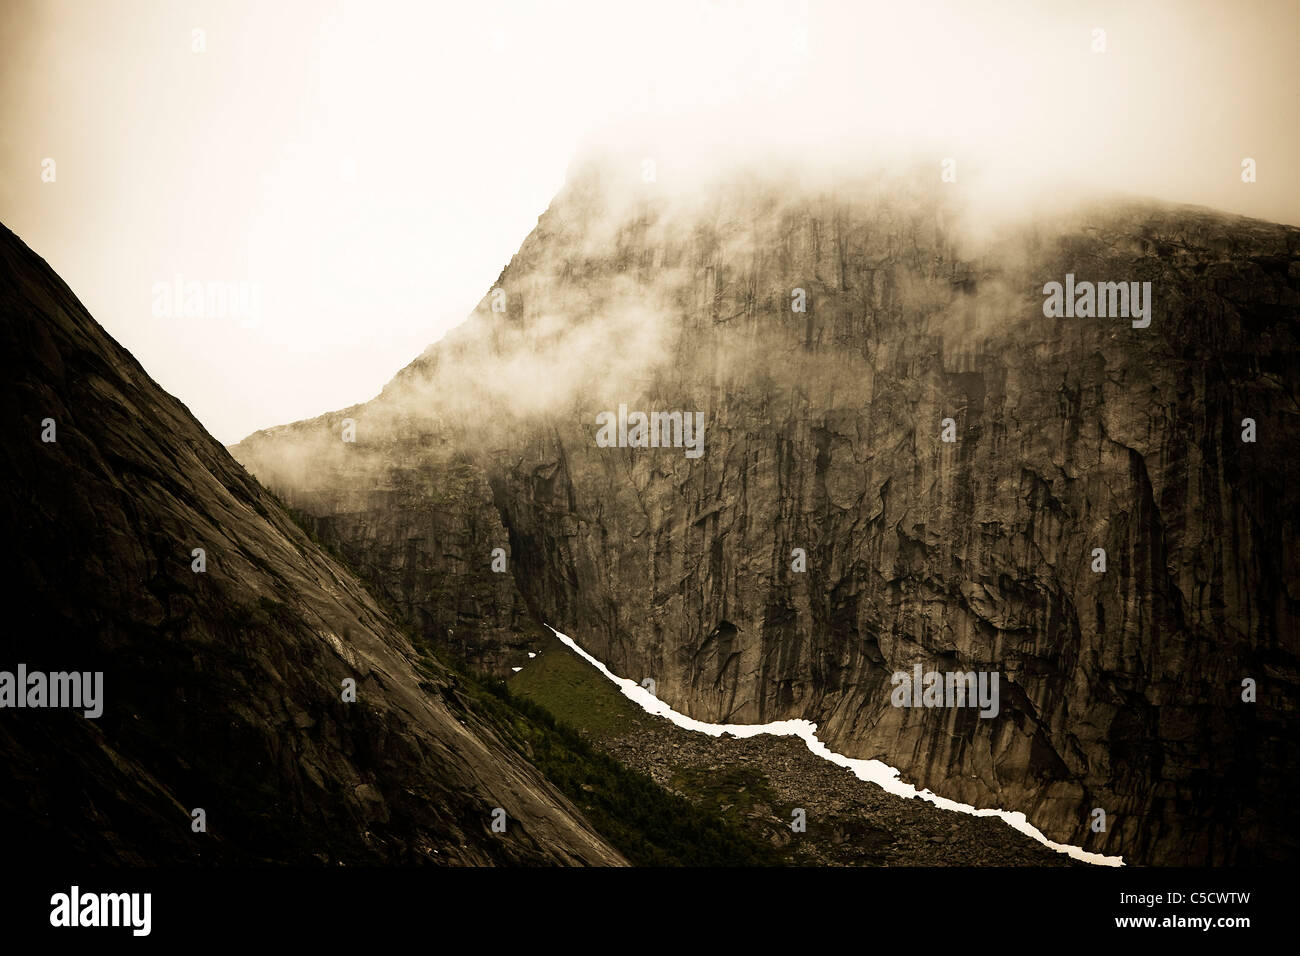 Scenic view of rock walls along steep in fog - Stock Image